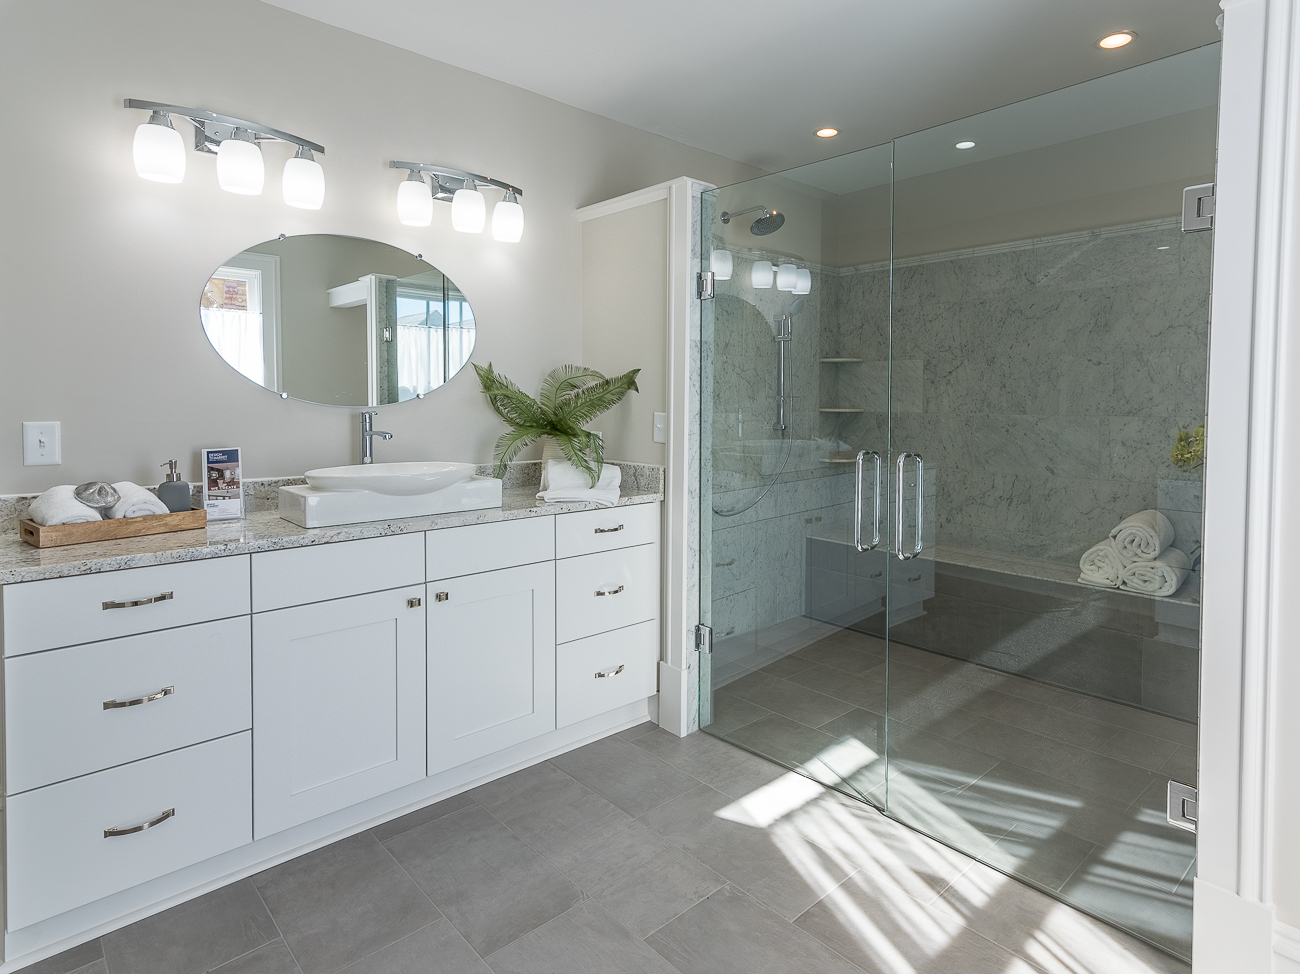 In the event you need to fit 11 people into a single shower, the master bedroom suite has one with double glass doors, two shower heads, and a built-in bench. Two full vanities are situated on either wall. / Image: Phil Armstrong, Cincinnati Refined // Published: 10.22.17<p></p>